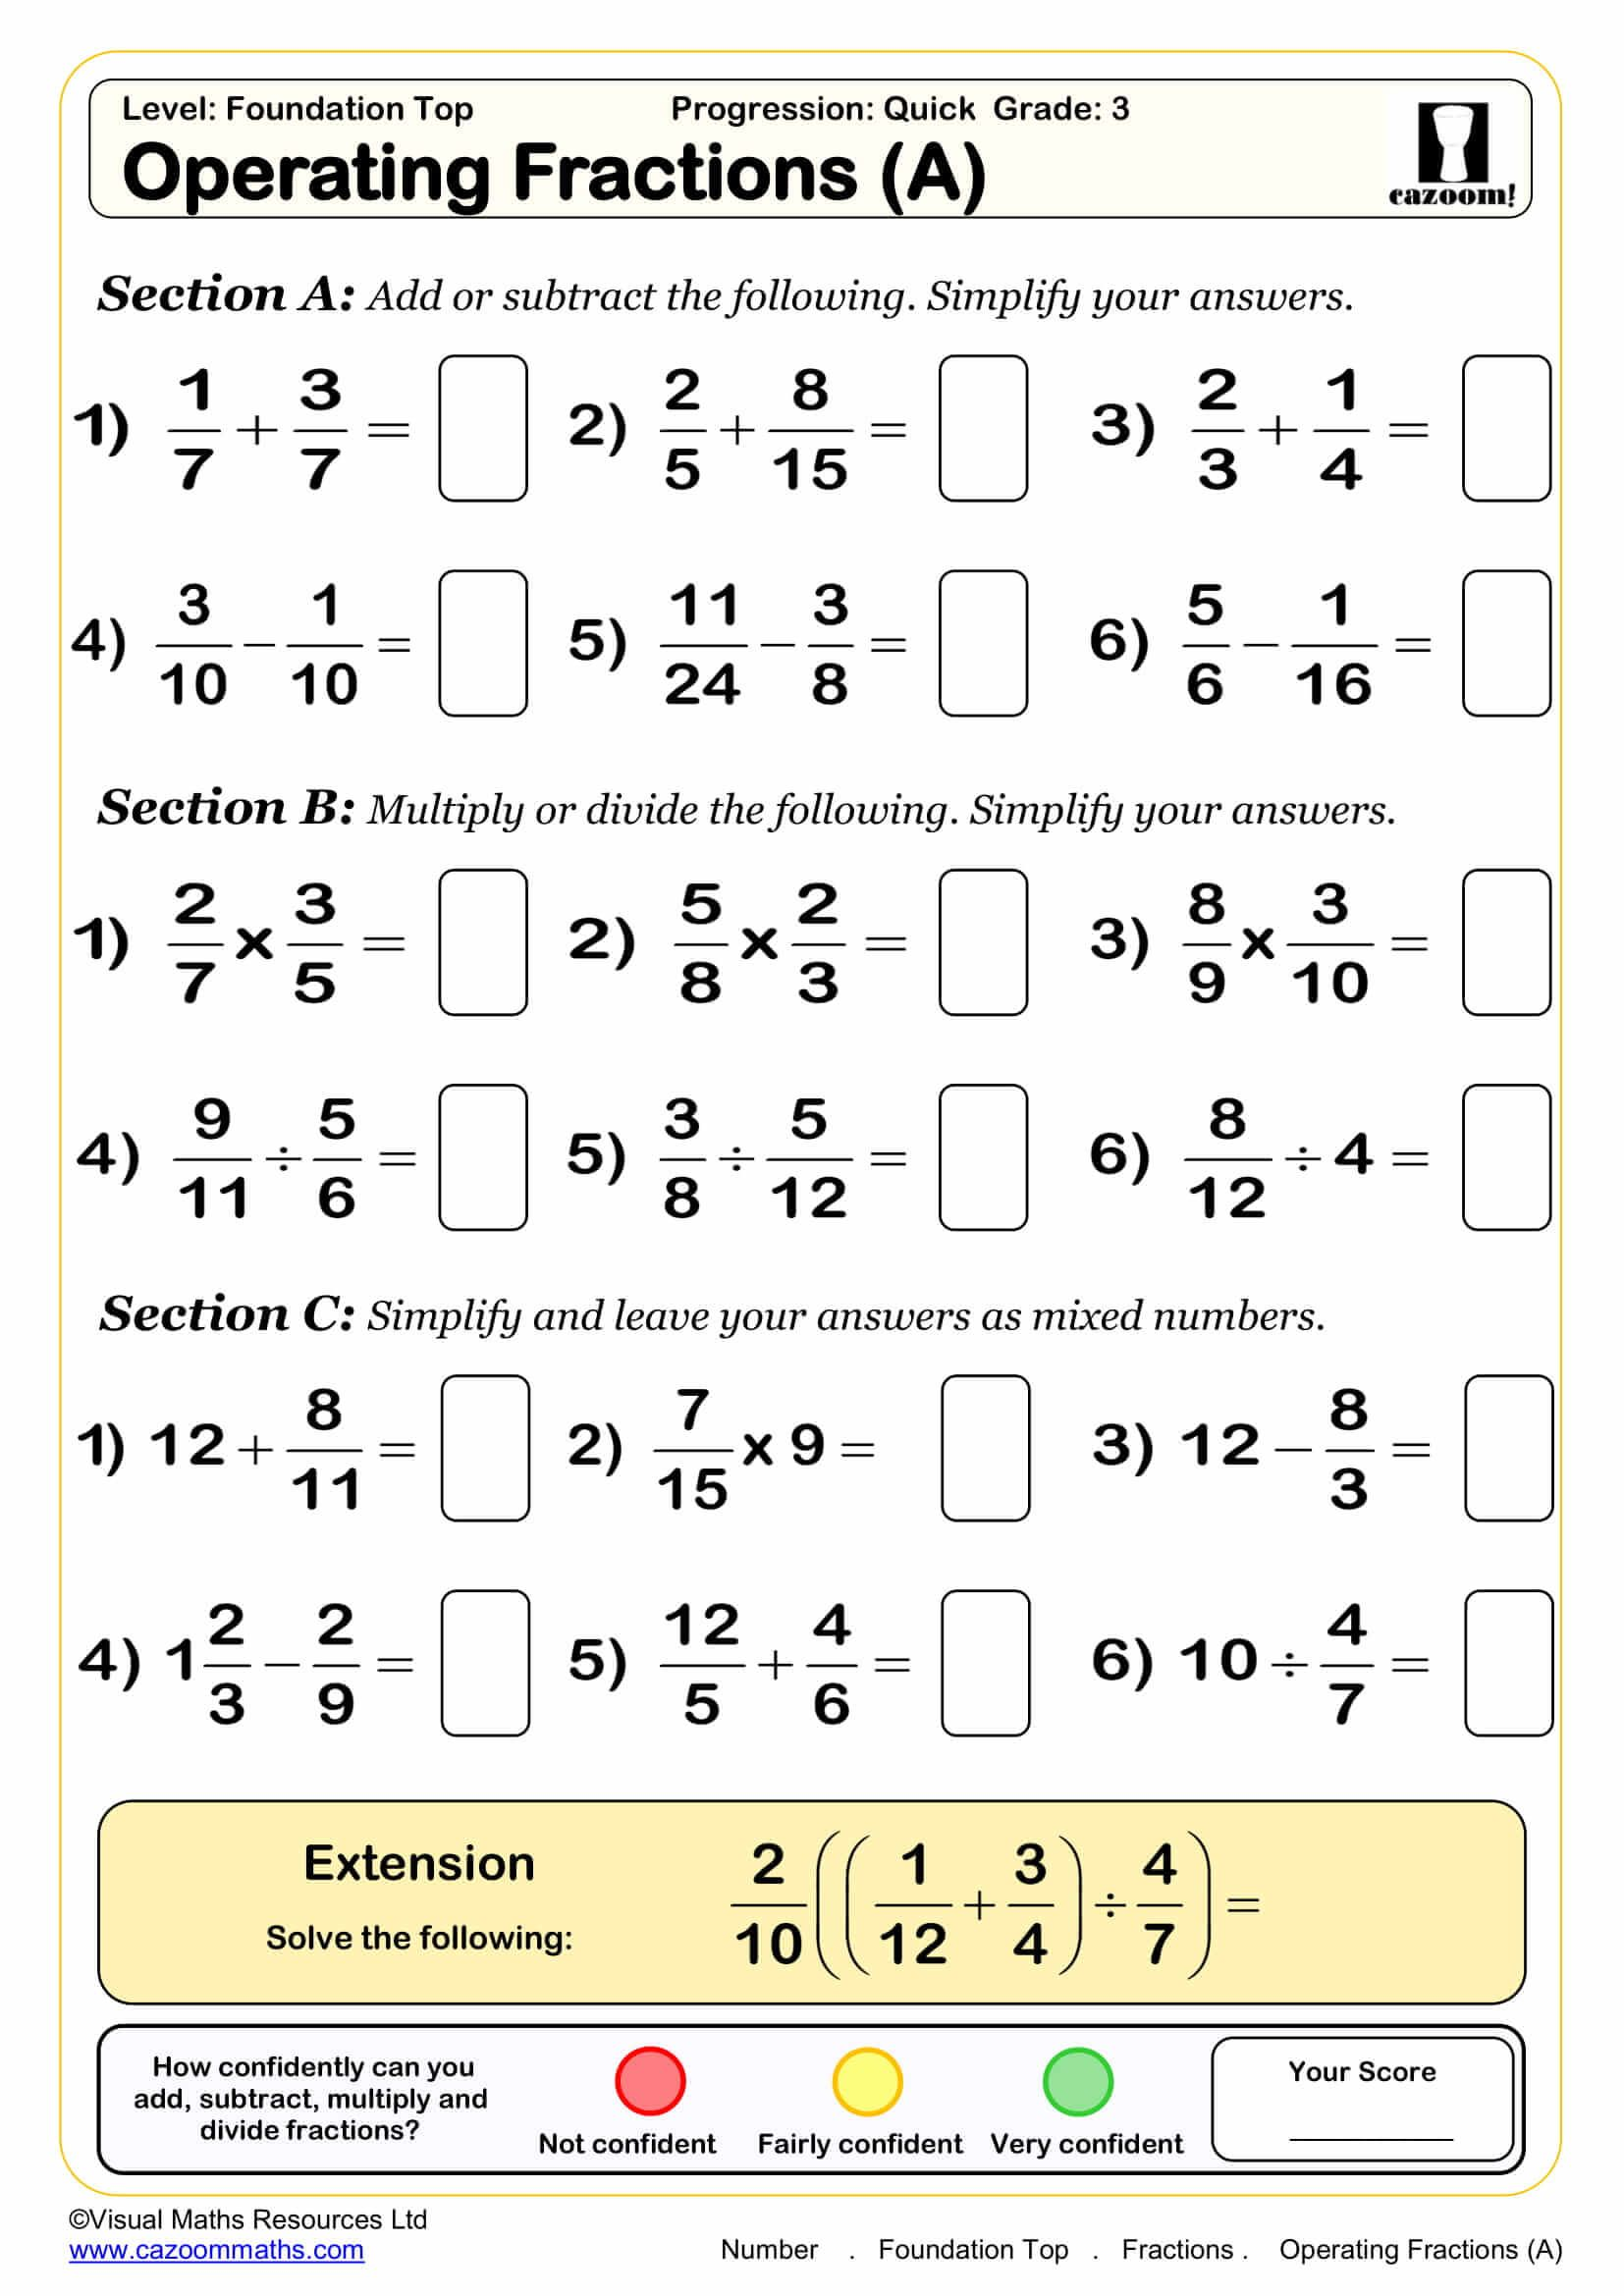 Fractions Maths Worksheet Ks3 maths worksheets, Free